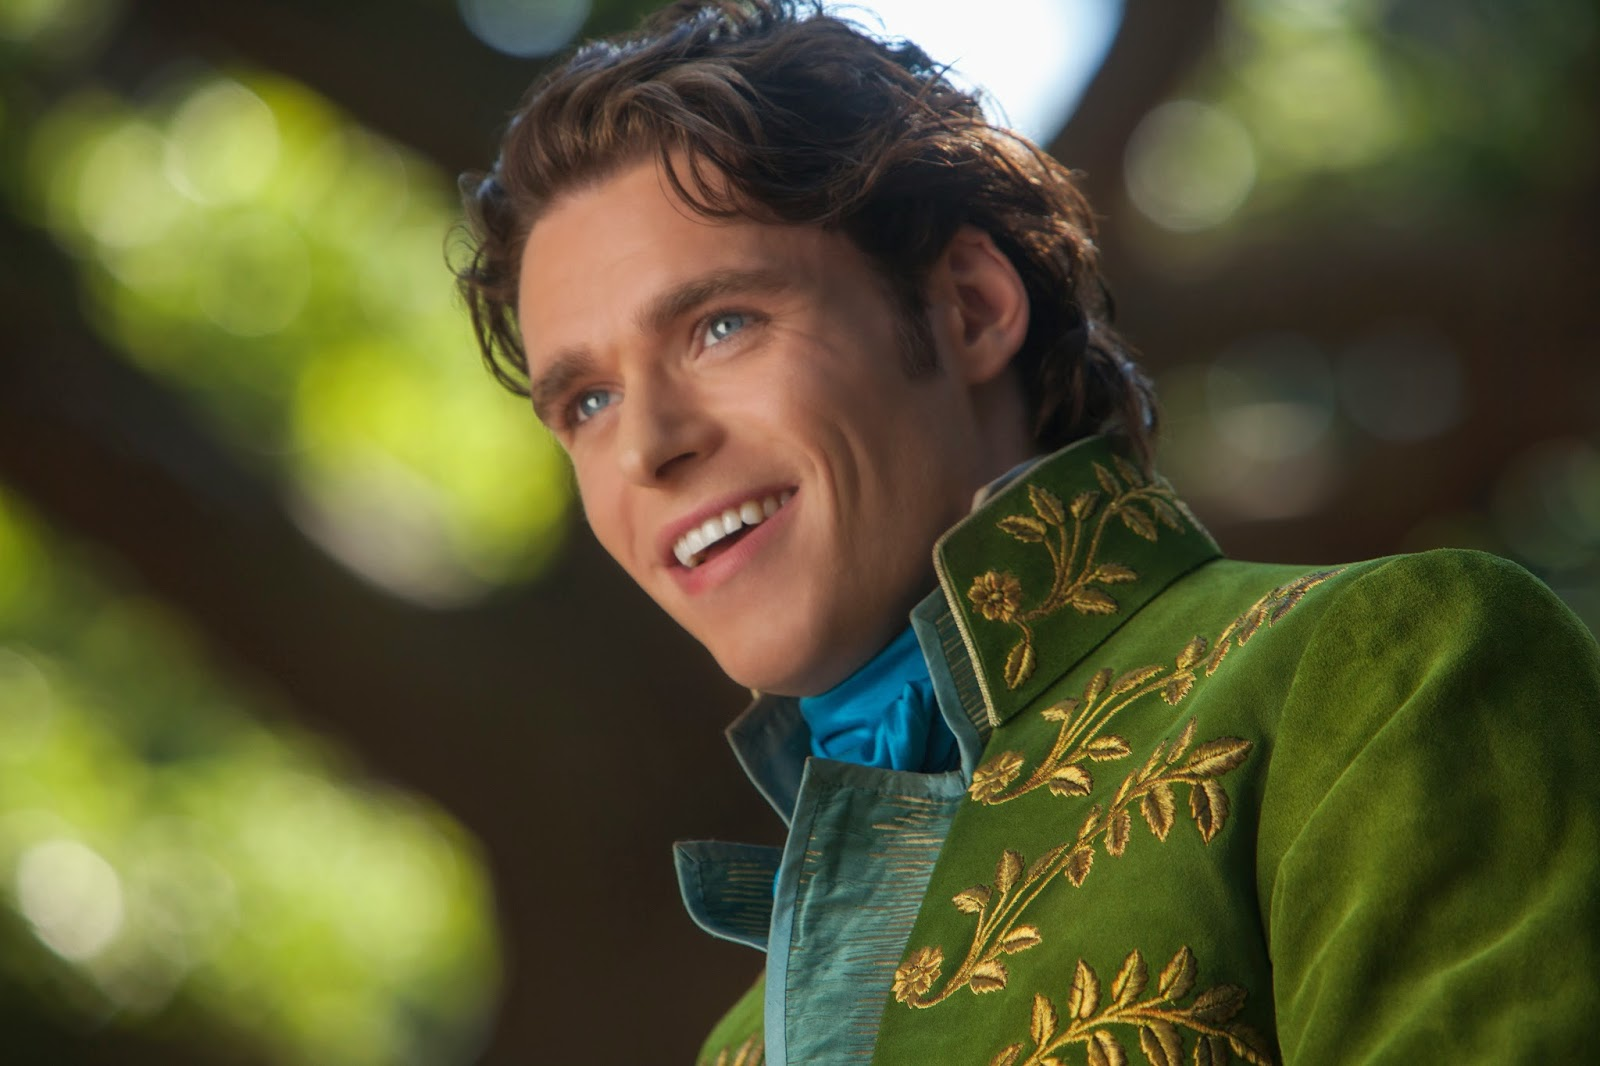 Richard Madden as the prince in Disney's Cinderella